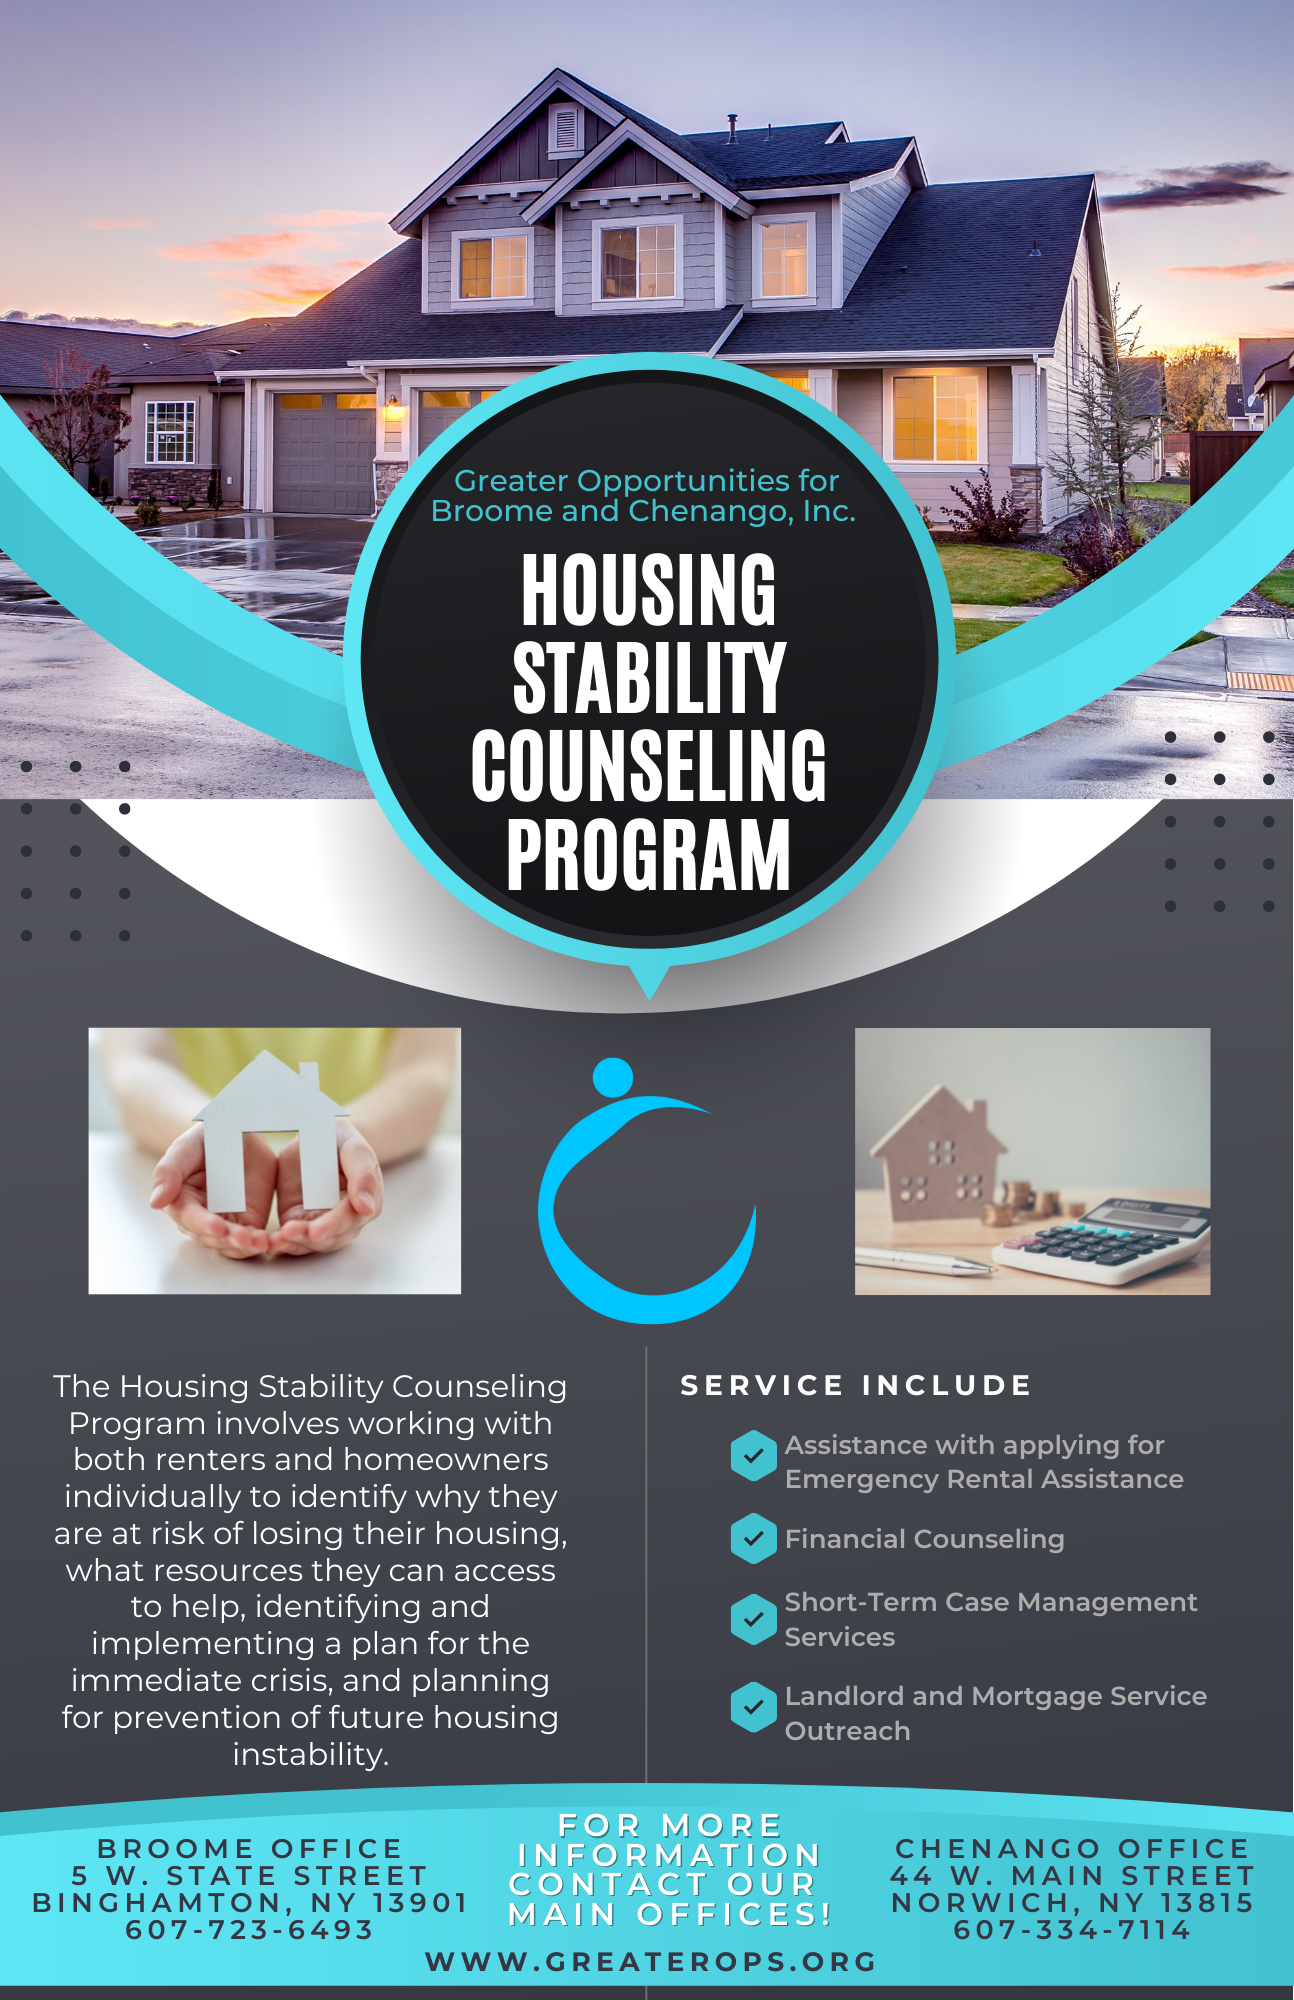 Housing Stability Counseling Program